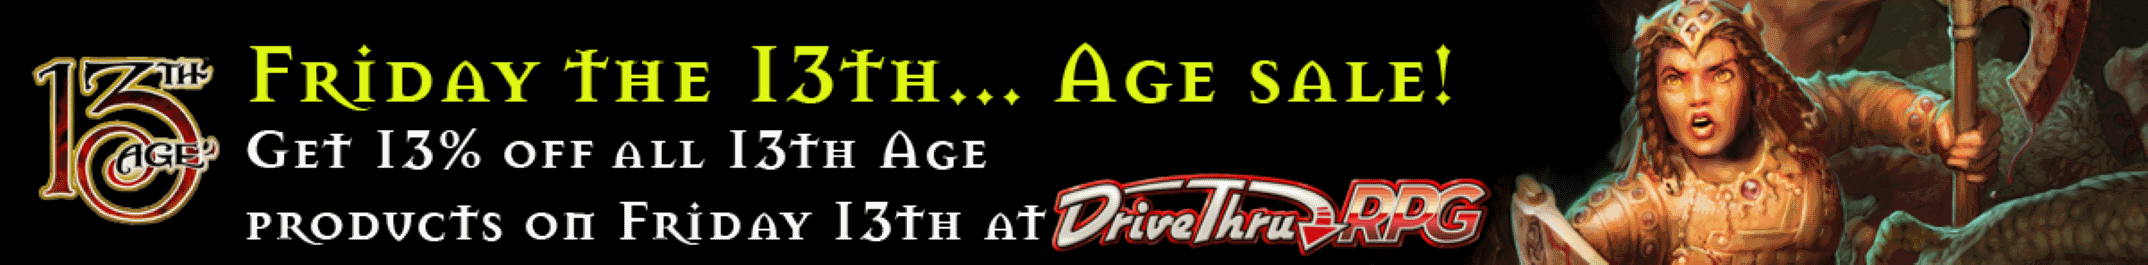 Friday the 13th... Age sale @ DriveThruRPG.com